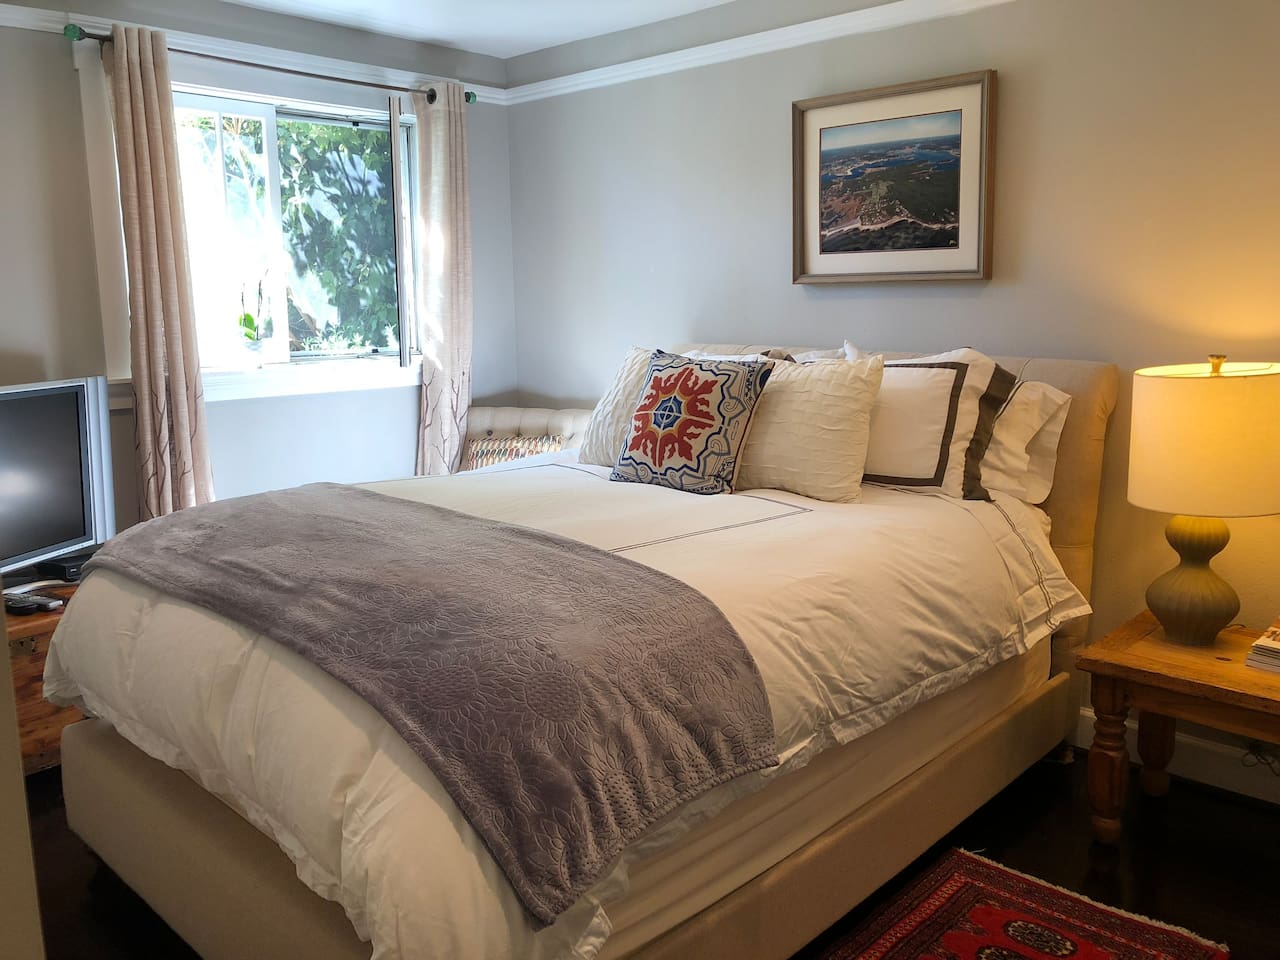 Master bedroom with fireplace - peaceful and quiet